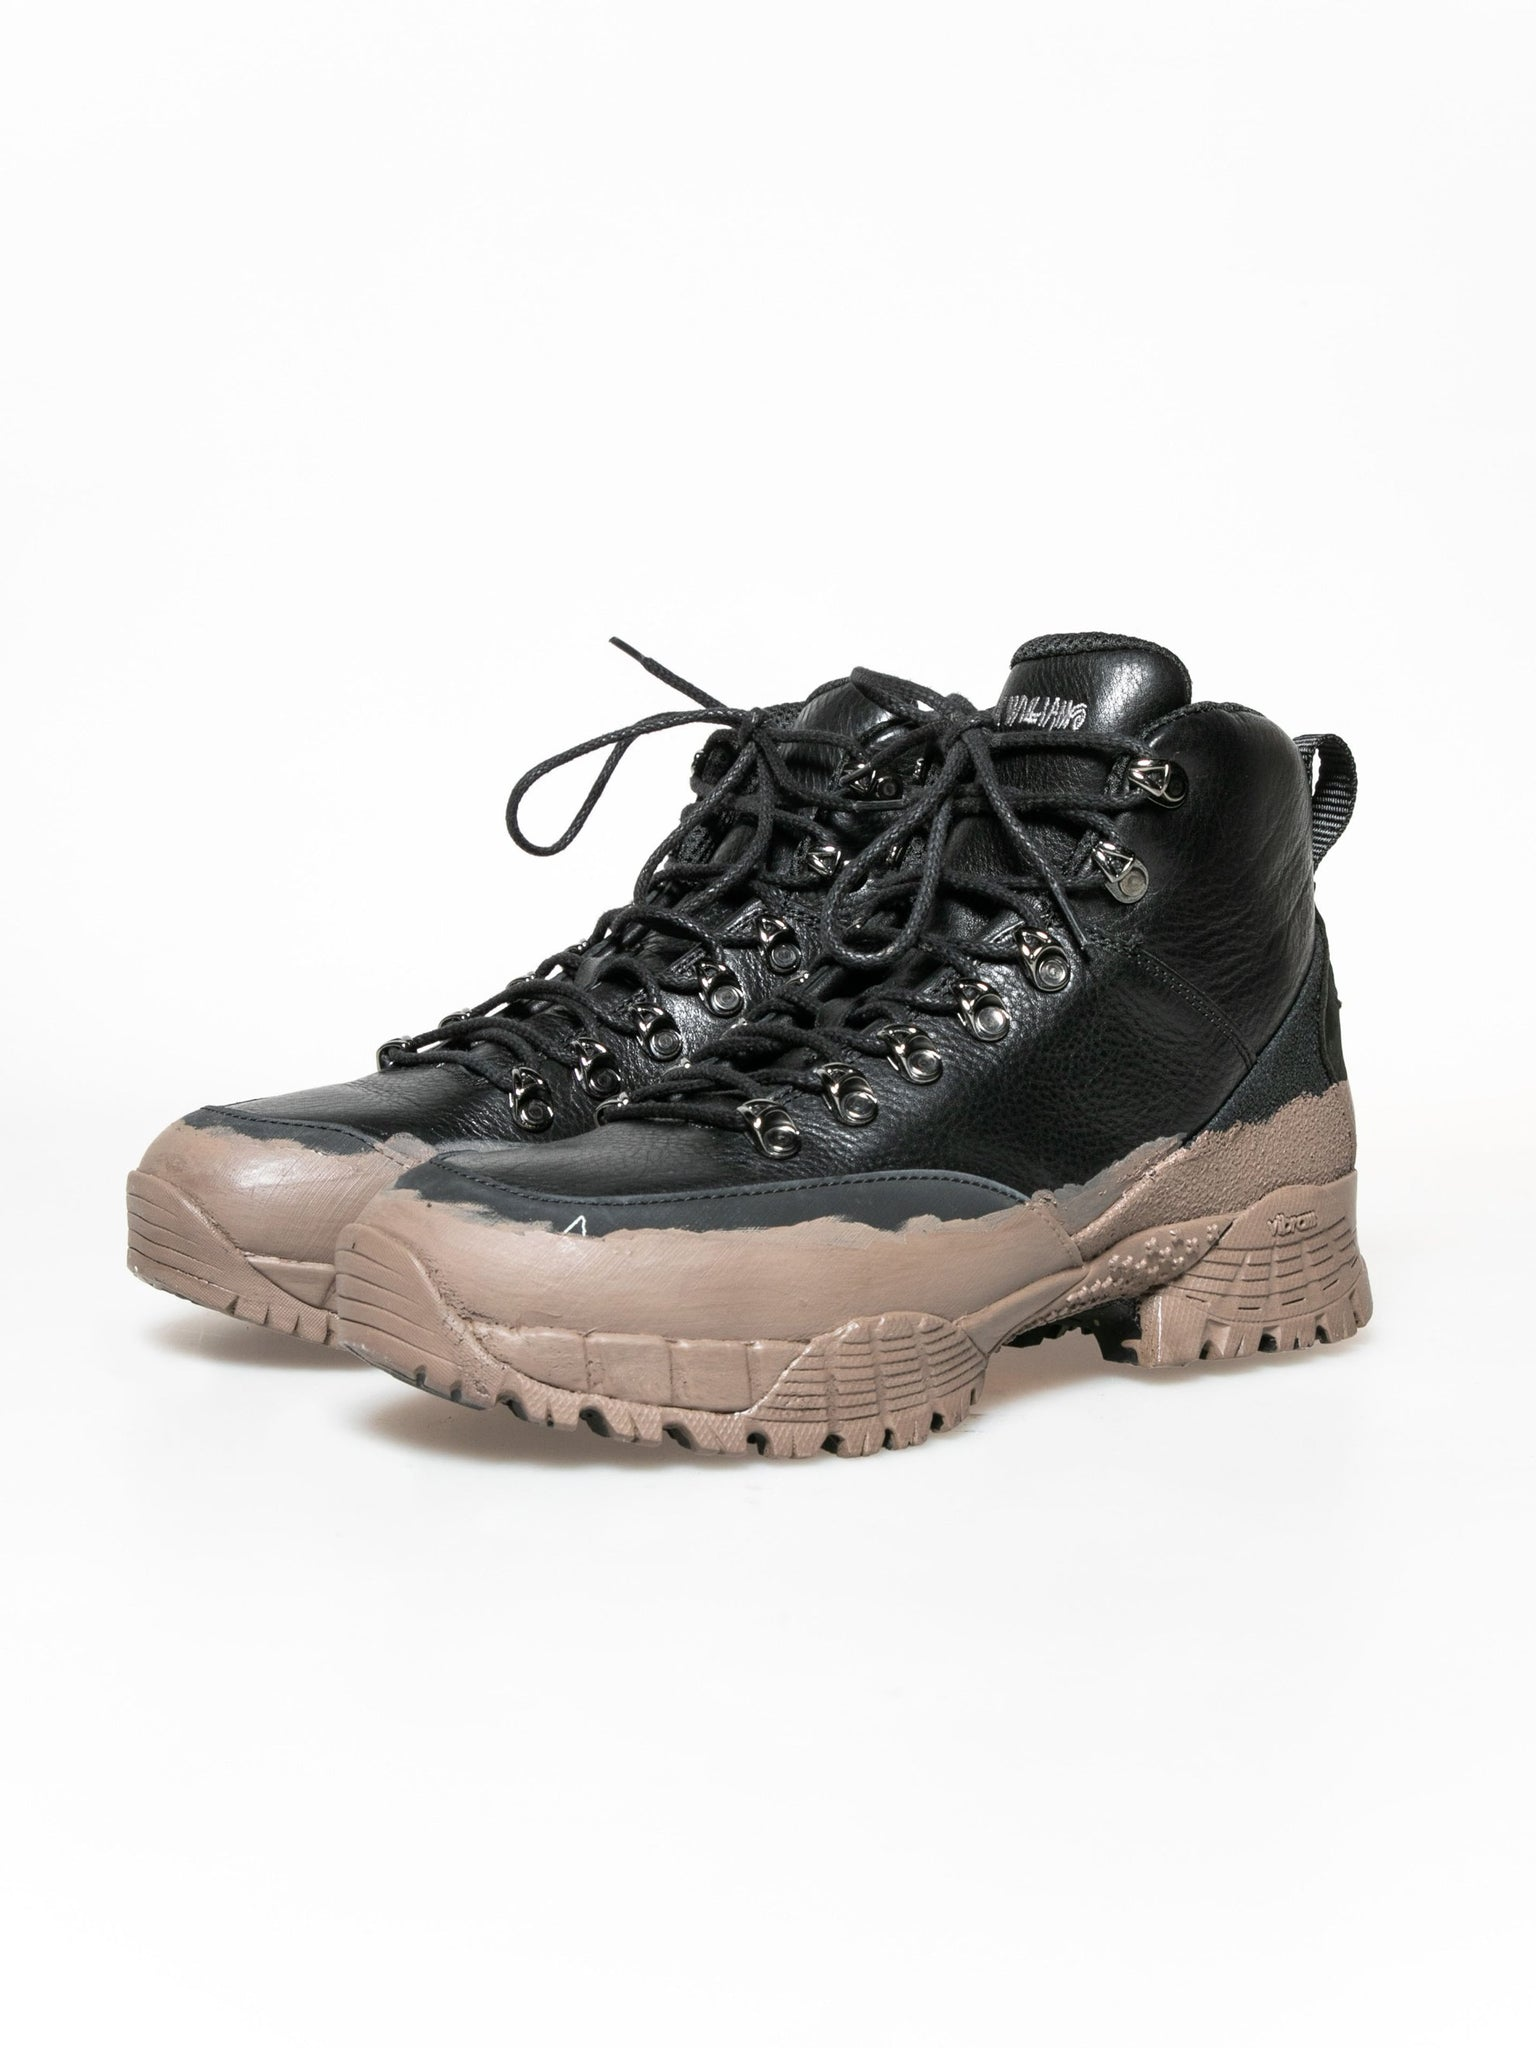 stussy-x-mmw-hiking-boot